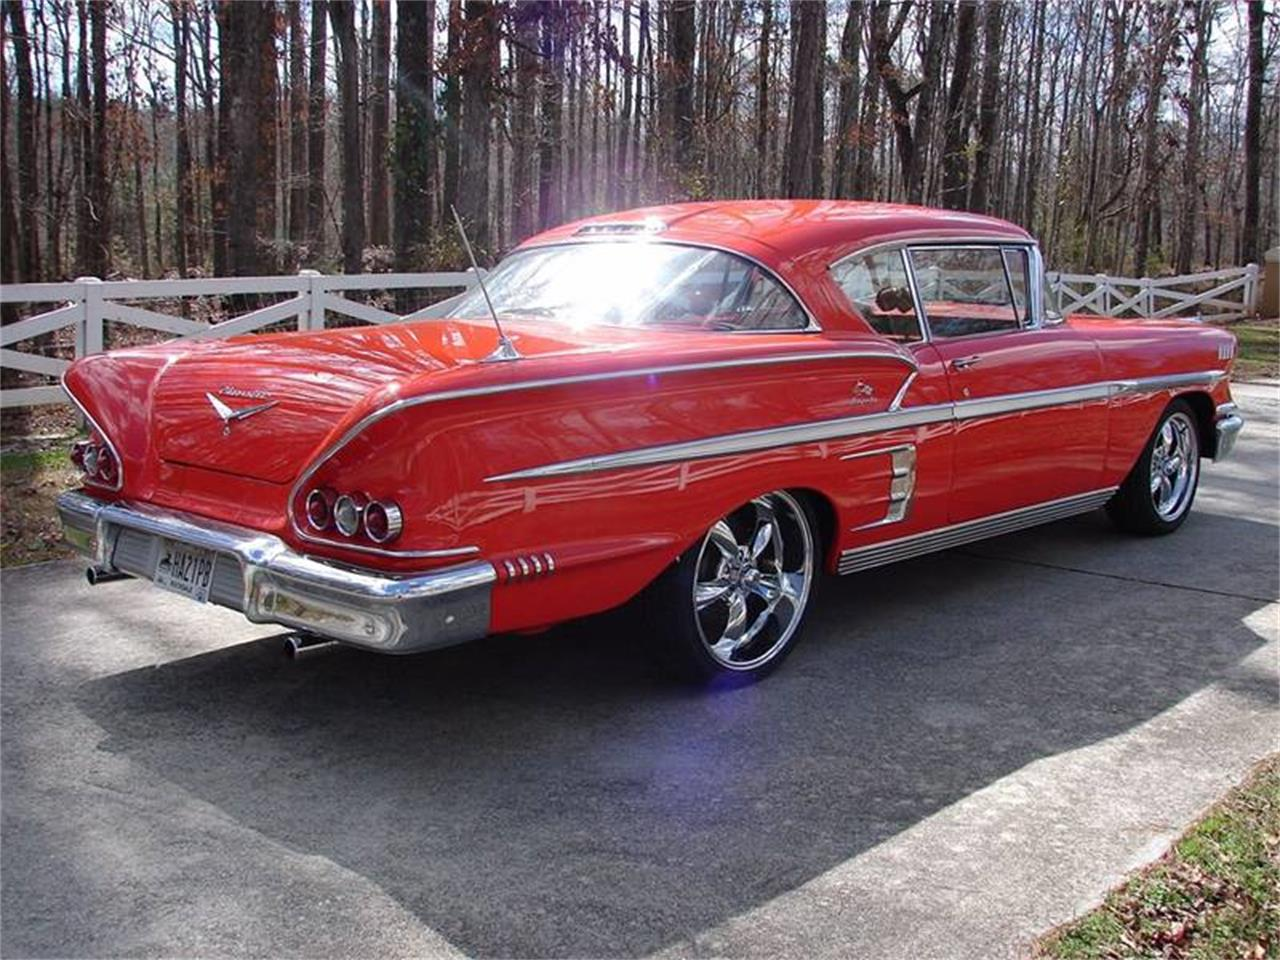 Large Picture of '58 Chevrolet Impala - $49,500.00 Offered by Select Classic Cars - MG1I